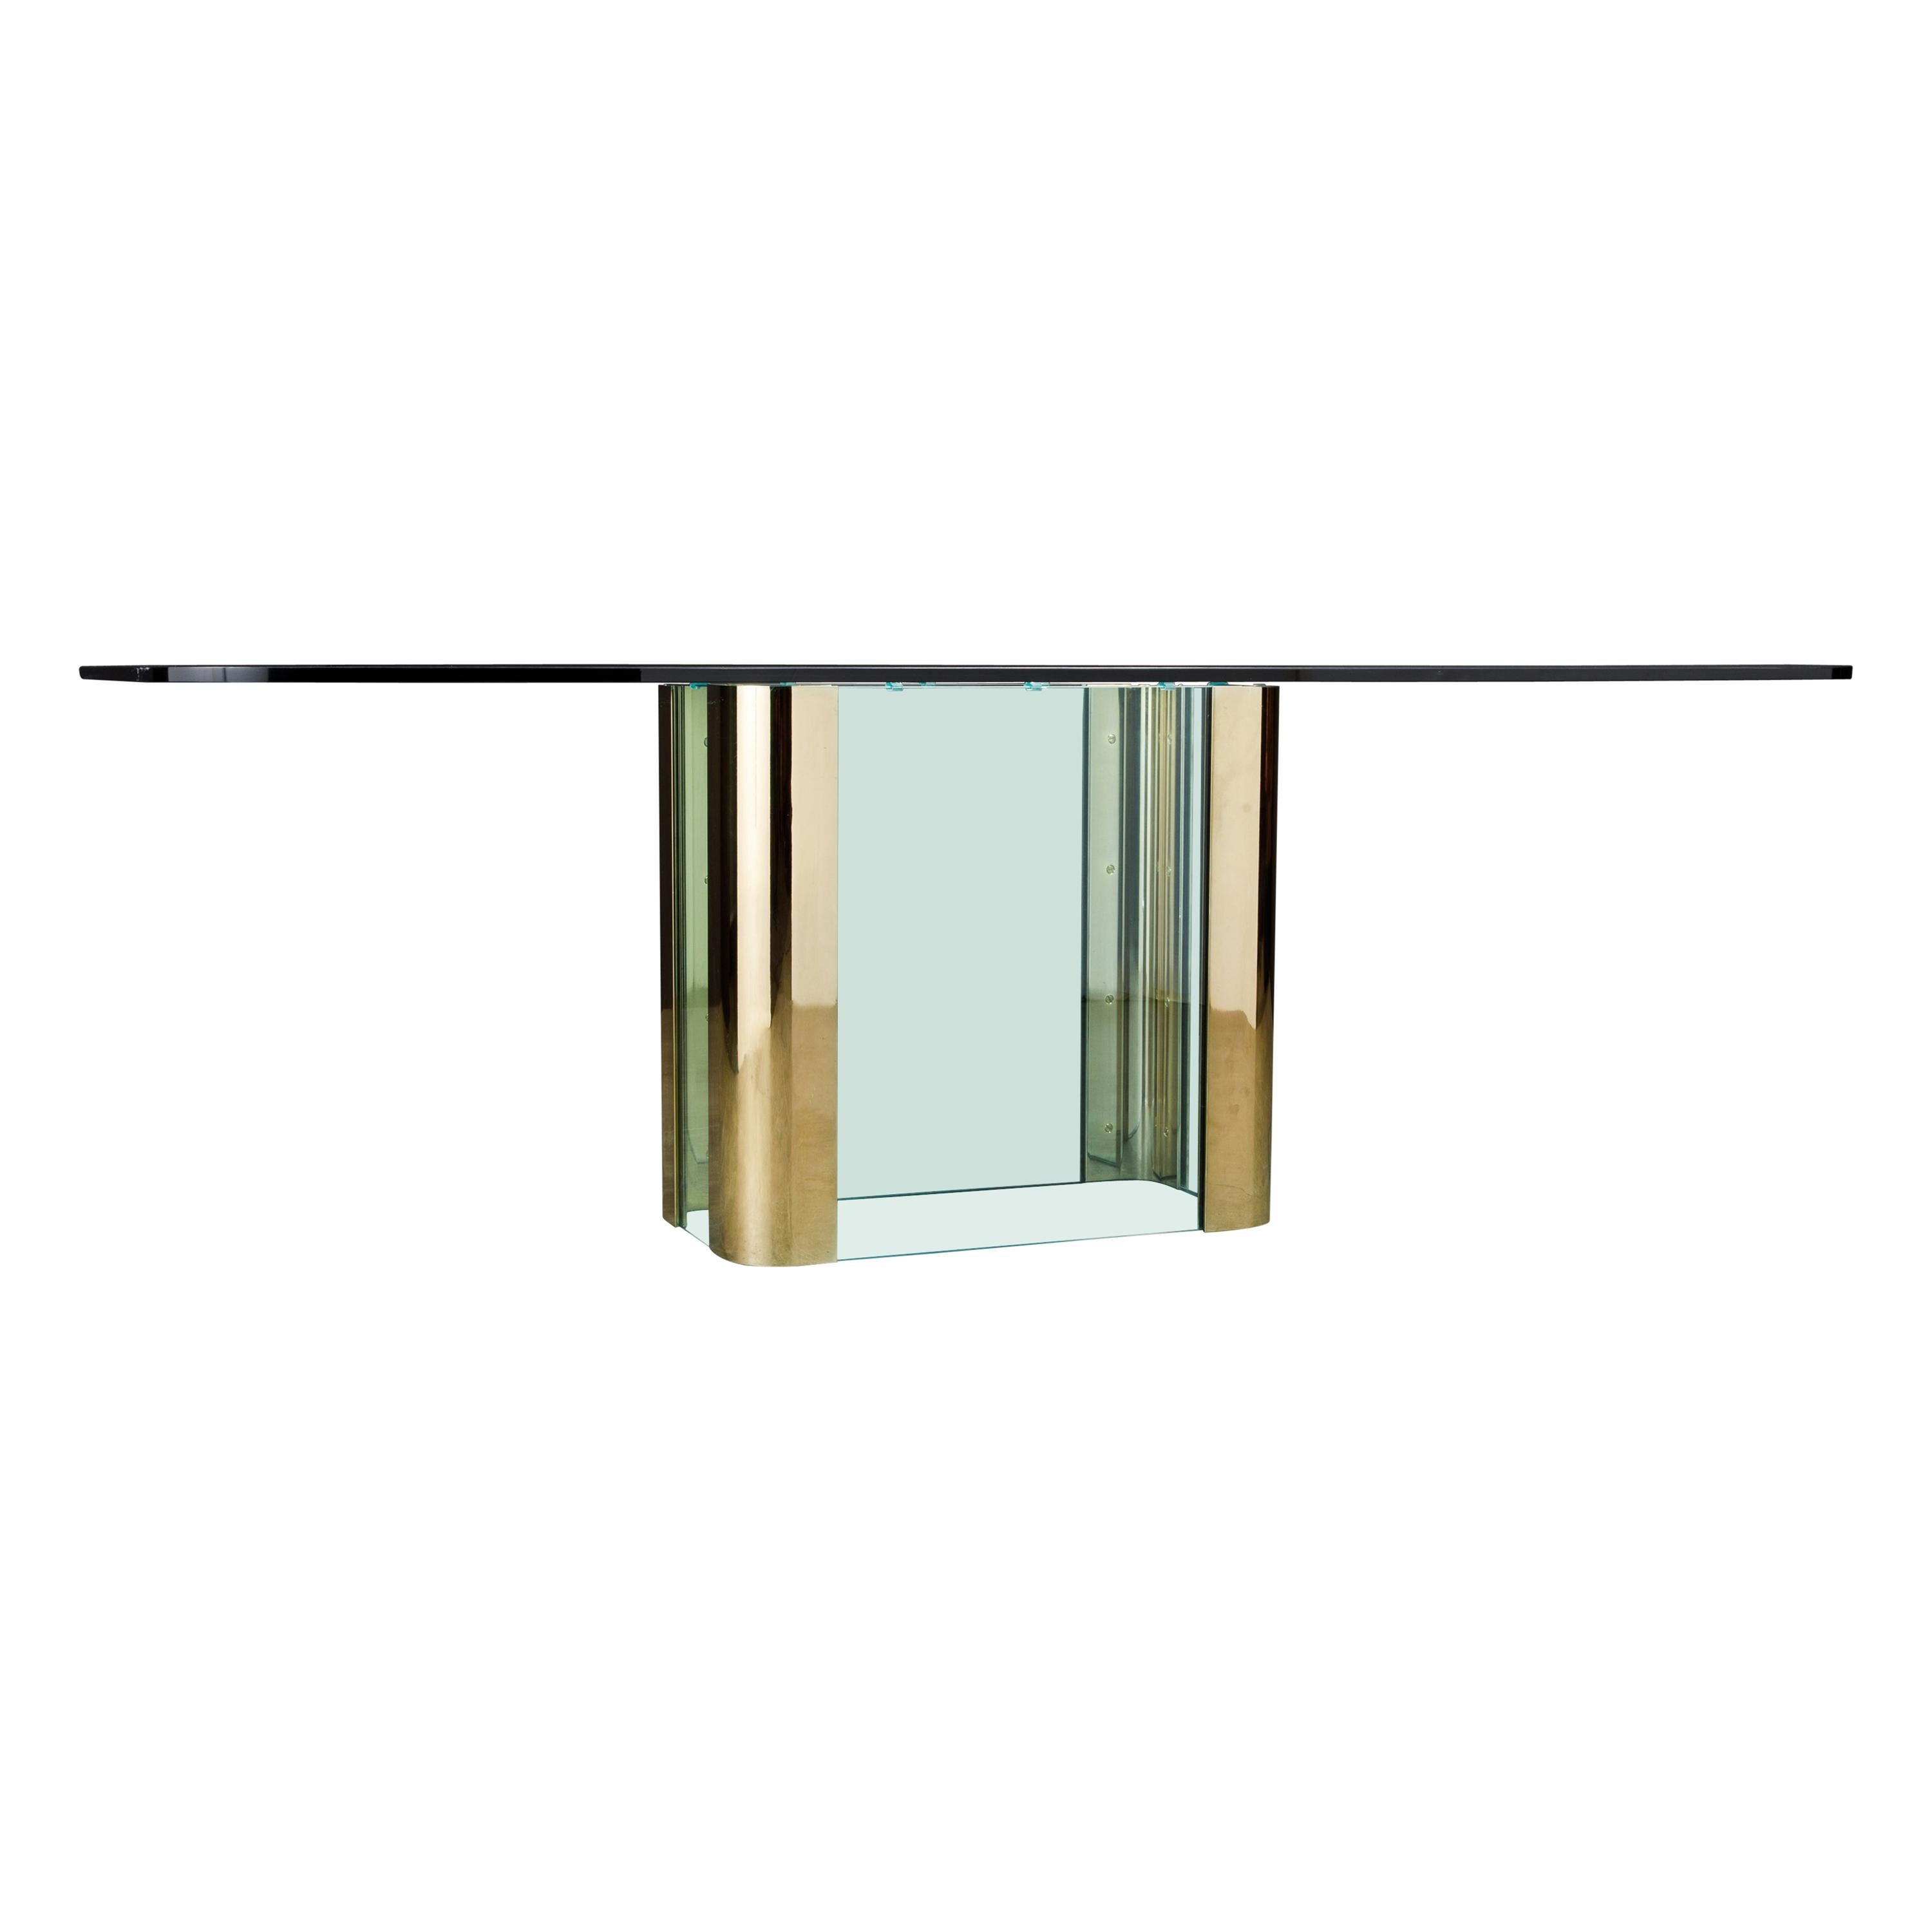 Pace Collection Brass and Glass Dining or Conference Table, circa 1970s